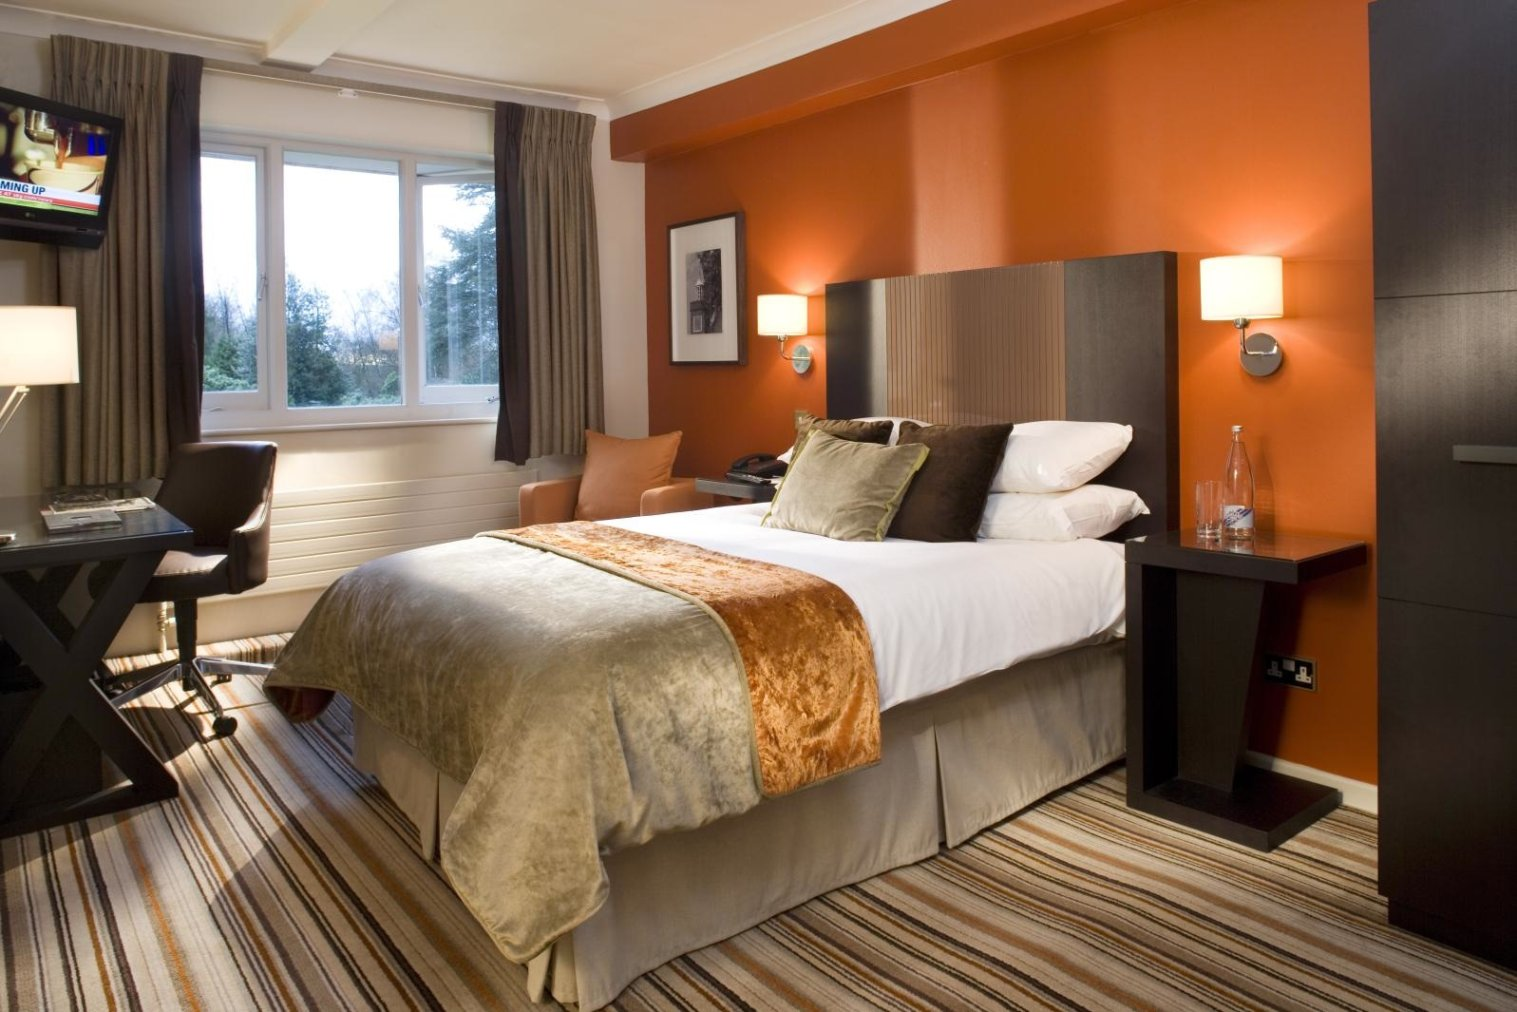 paint colors ideas for bedrooms photo - 2